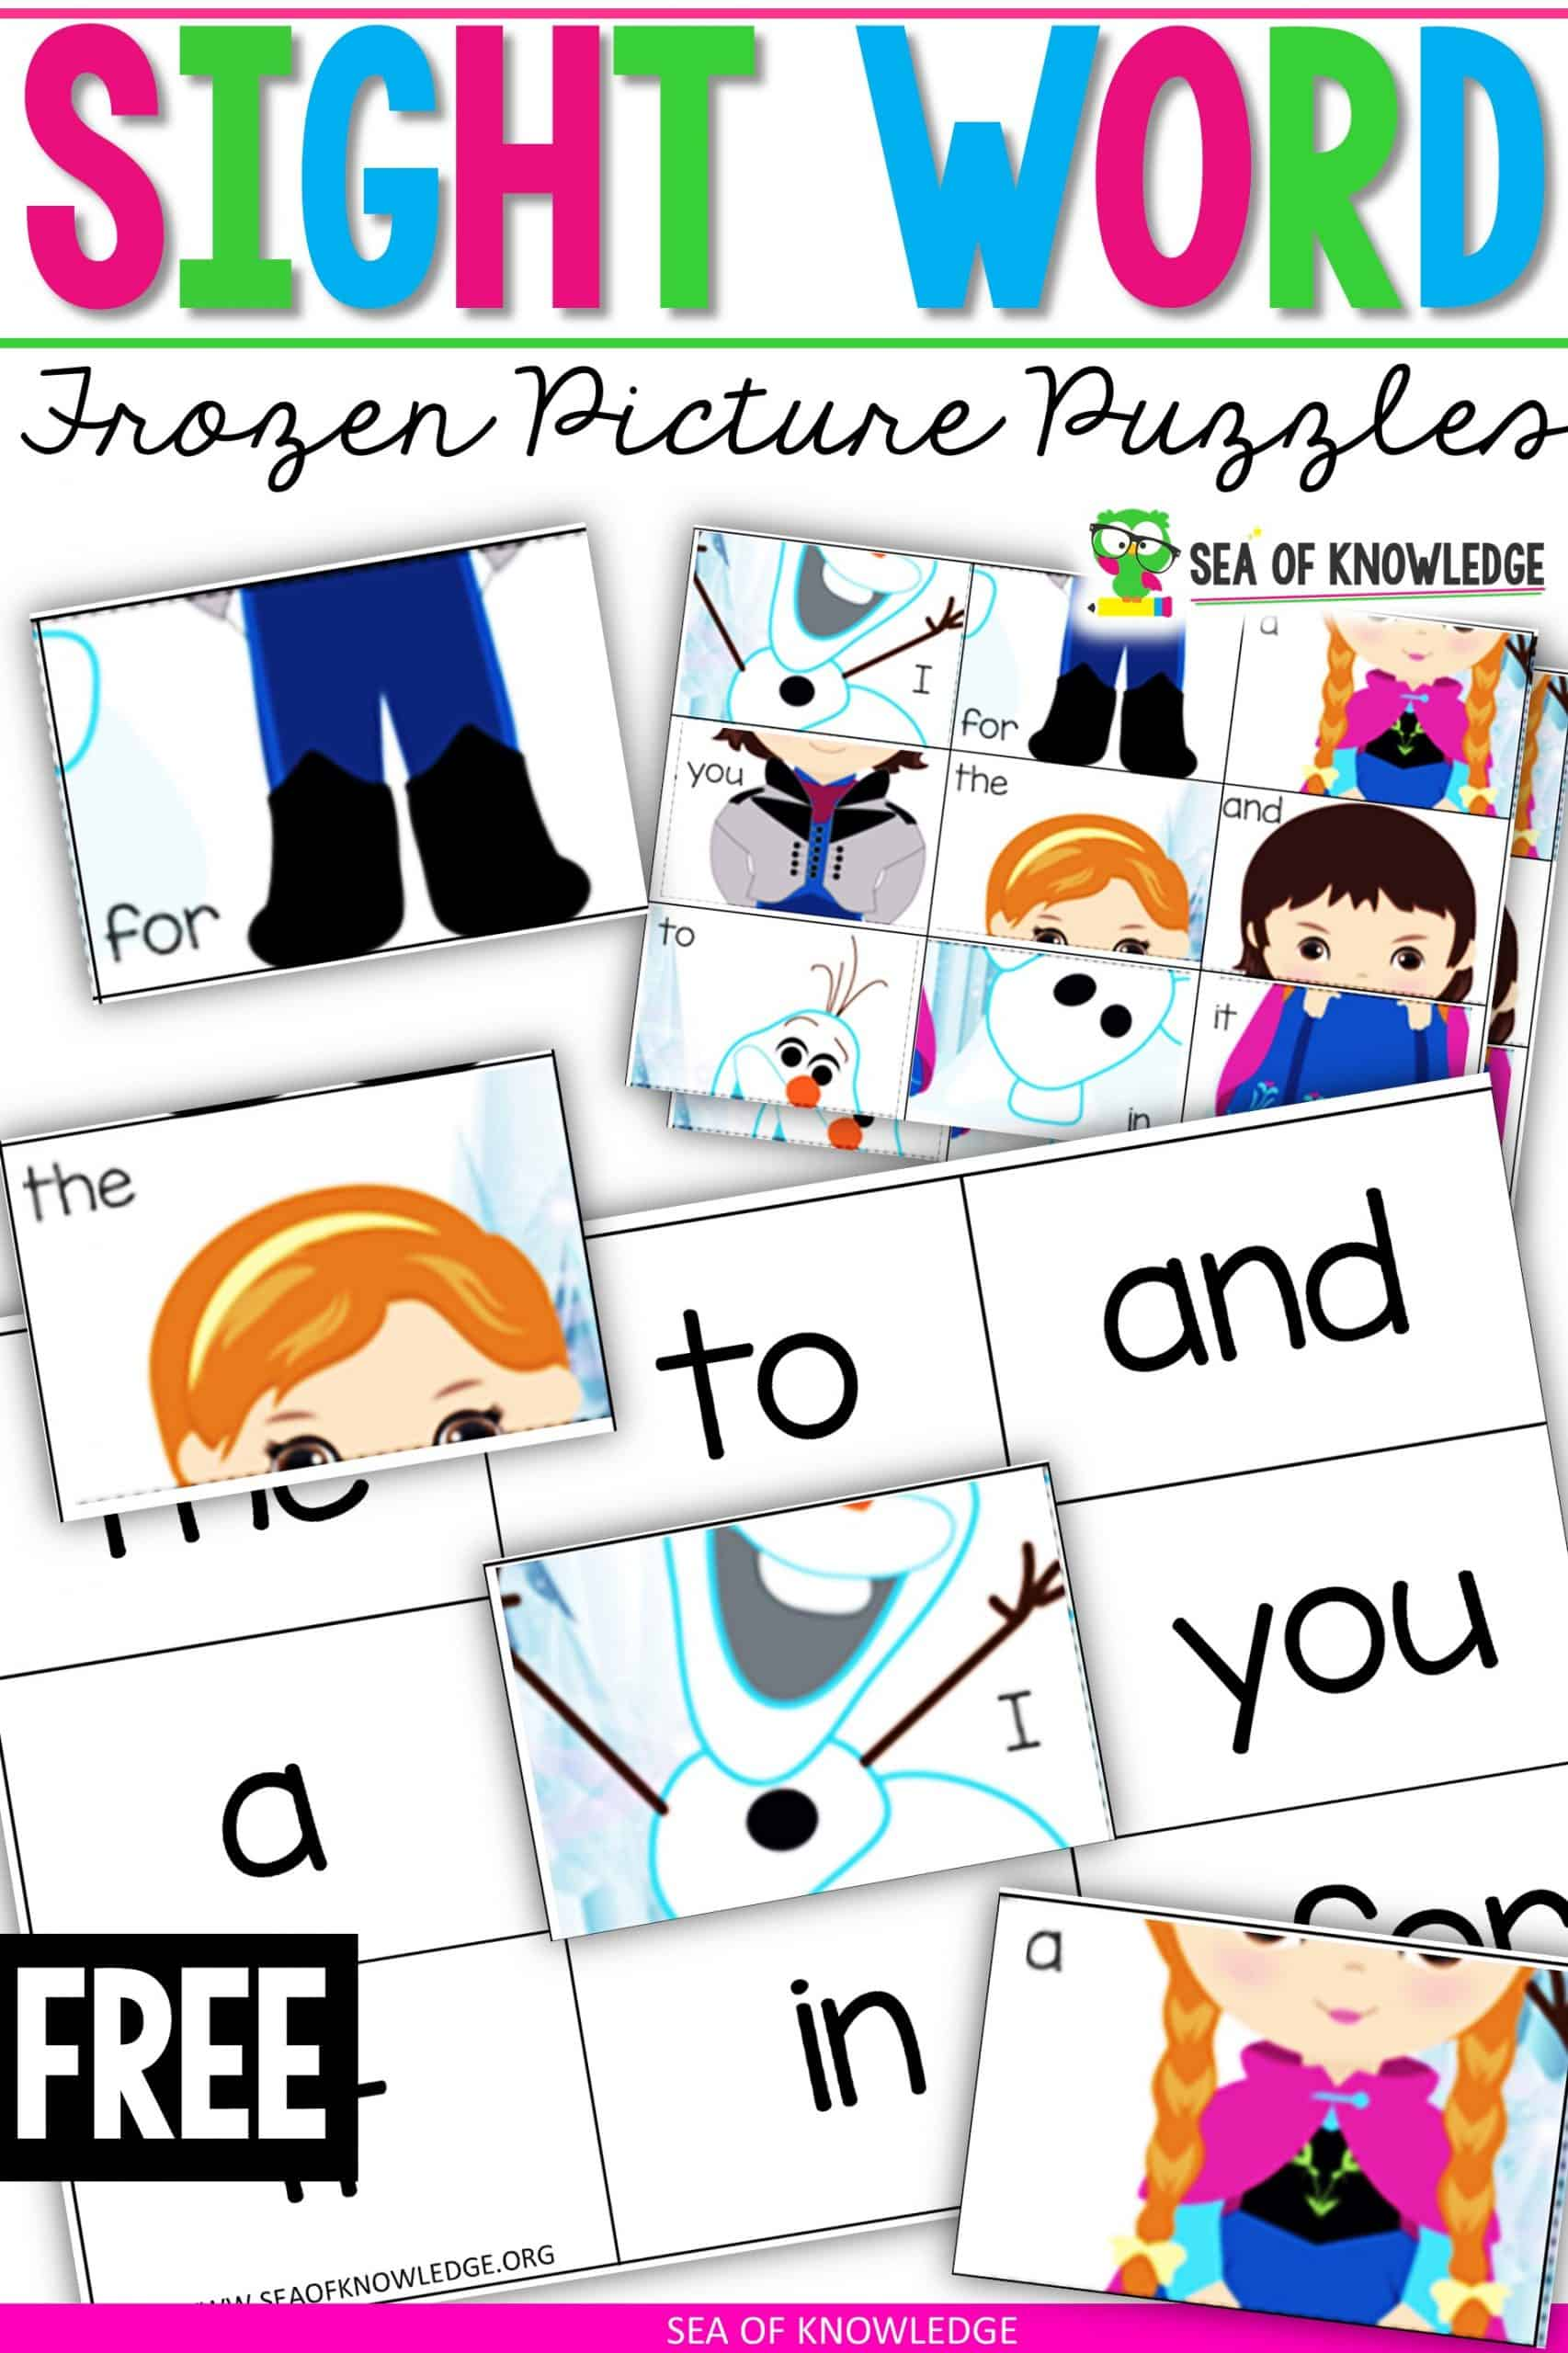 hight resolution of Ice Princess Frozen Sight Word Worksheet Puzzles - Sea of Knowledge